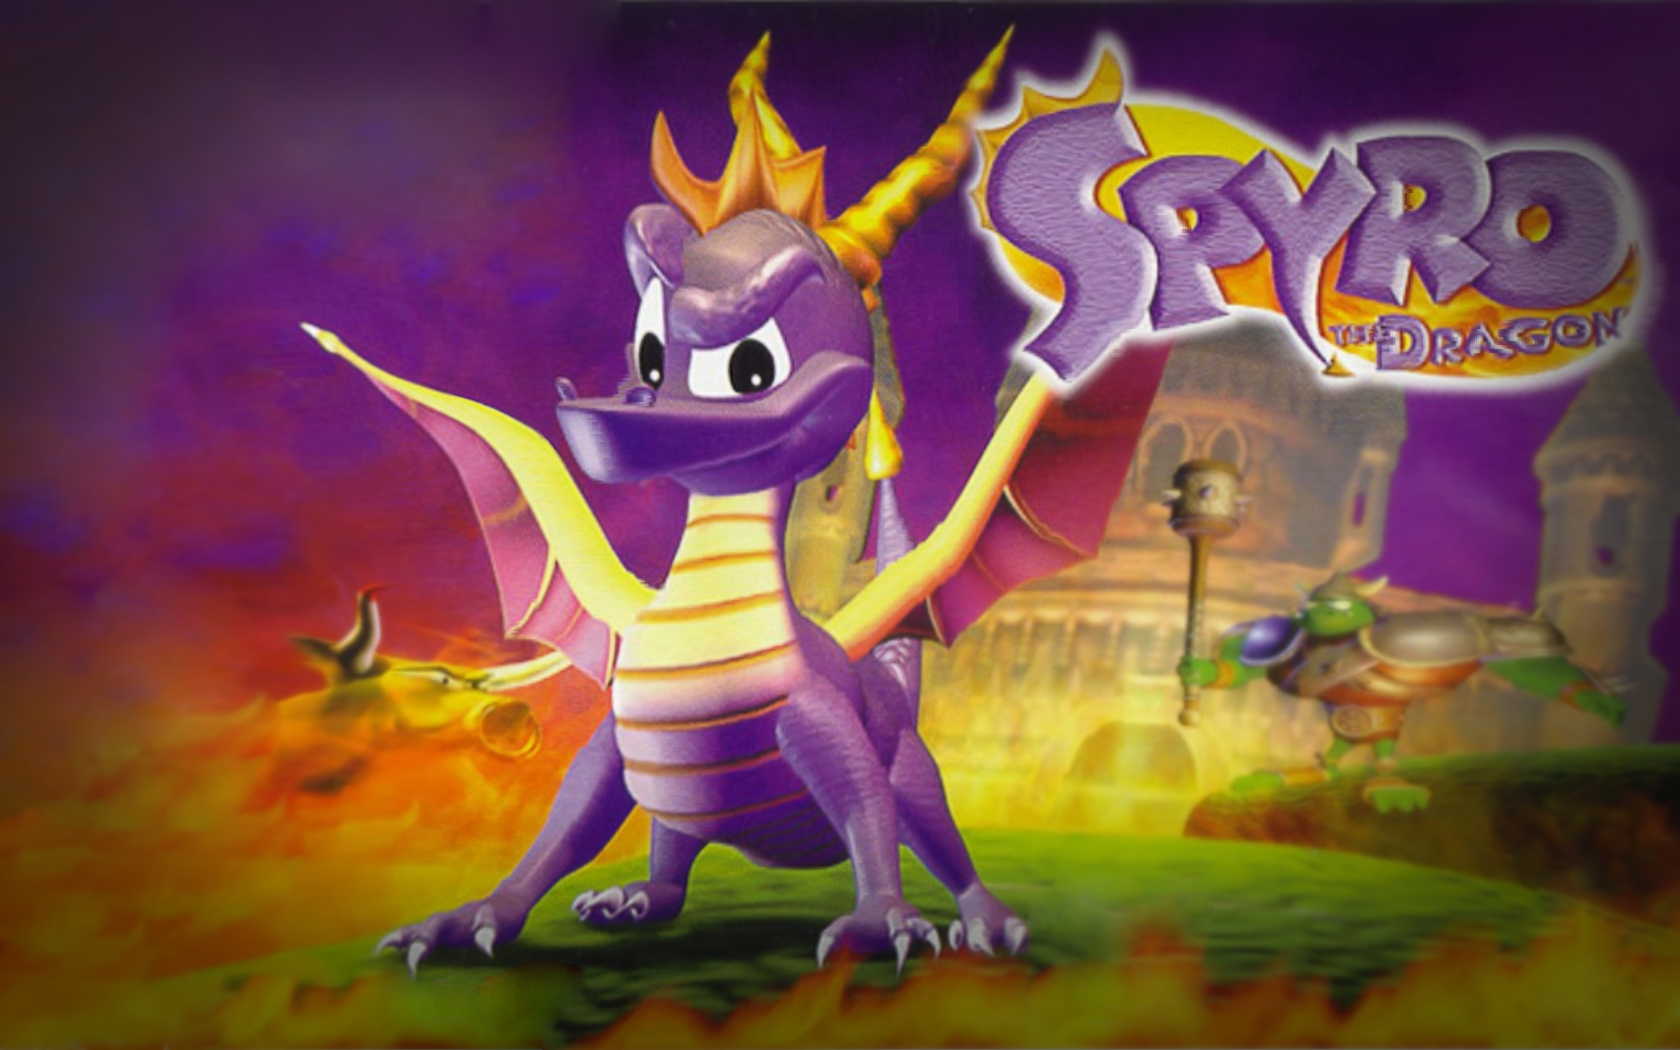 Spyro The Dragon Ps1 Wallpaper Images & Pictures - Becuo